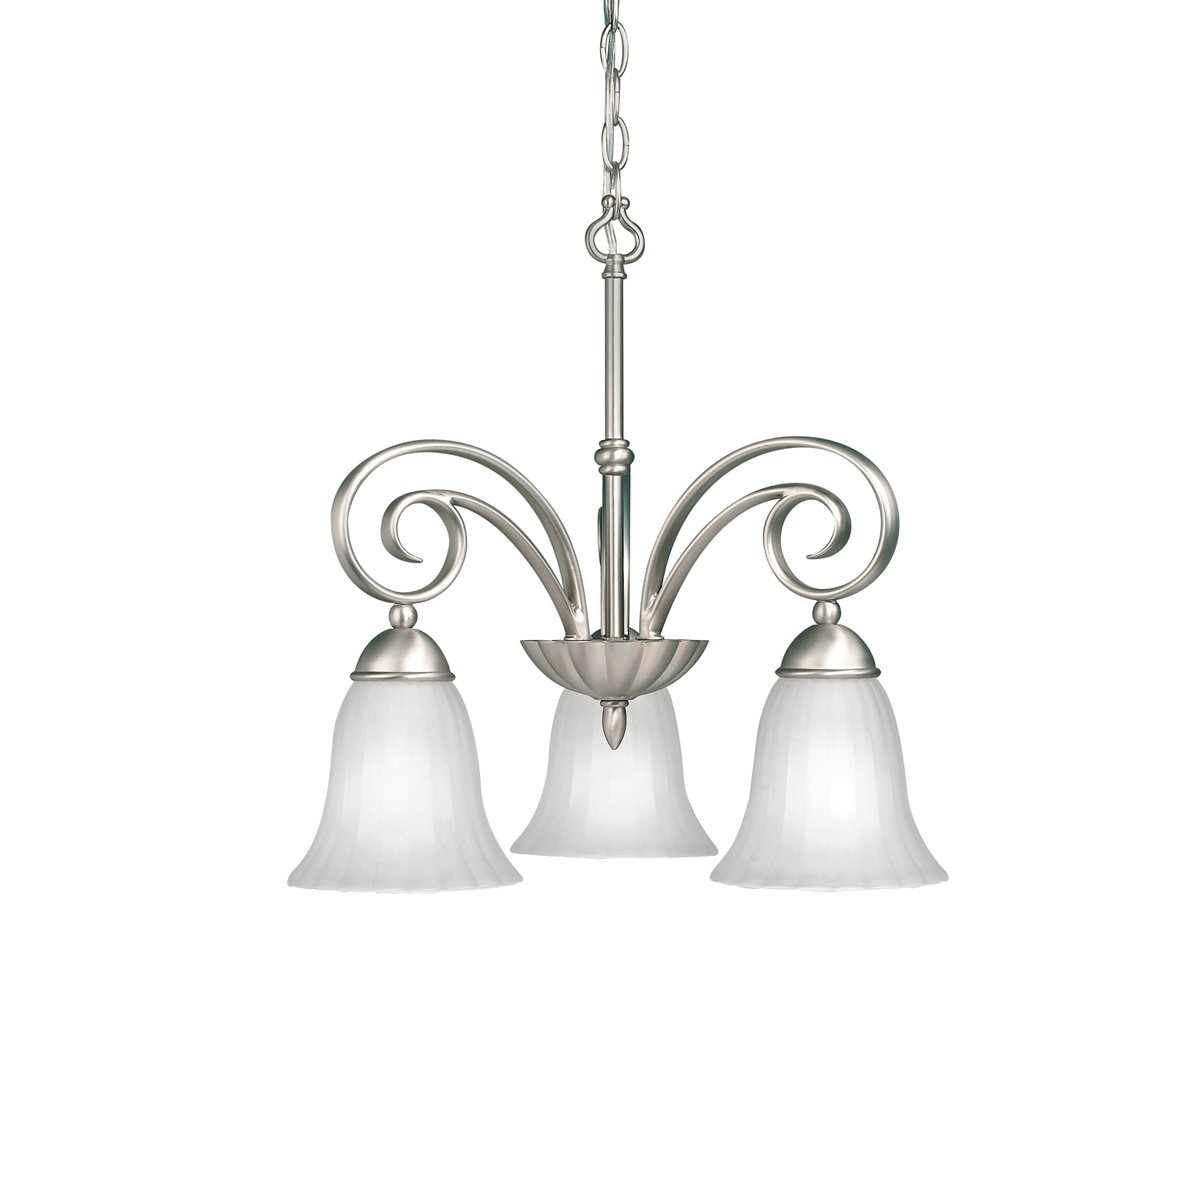 "Kichler 3326NI Kitchen Nook Chandelier Lighting, Brushed Nickel 3-Light (19"" W x 19"" H) 300 Watts"